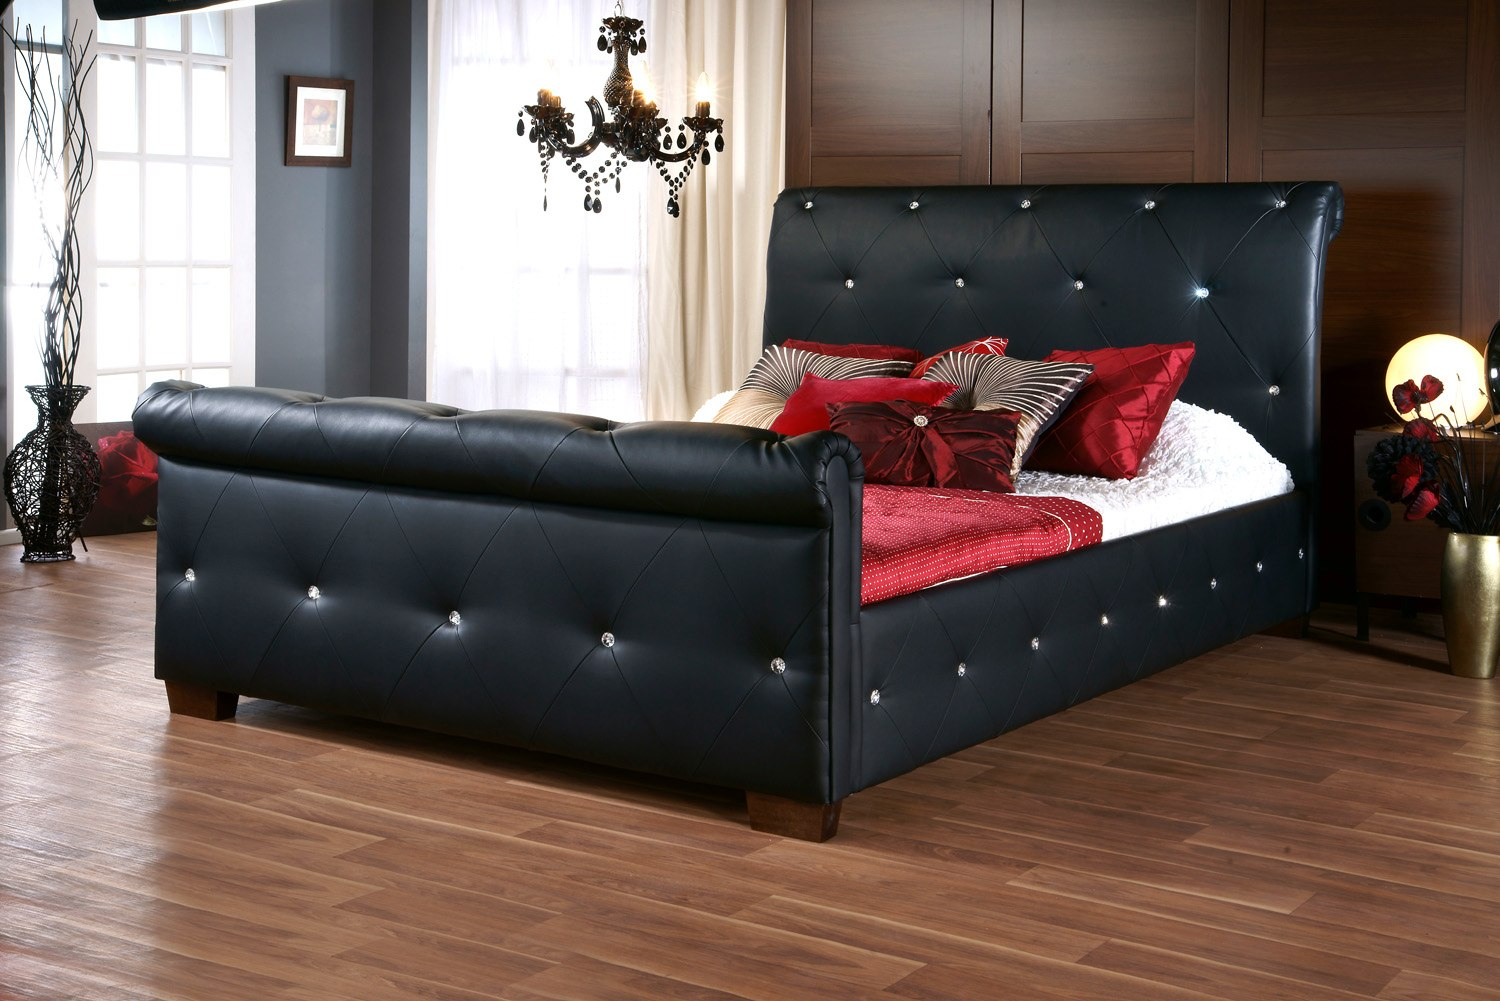 sargaris black faux leather bedframe available from the world of beds askern doncaster